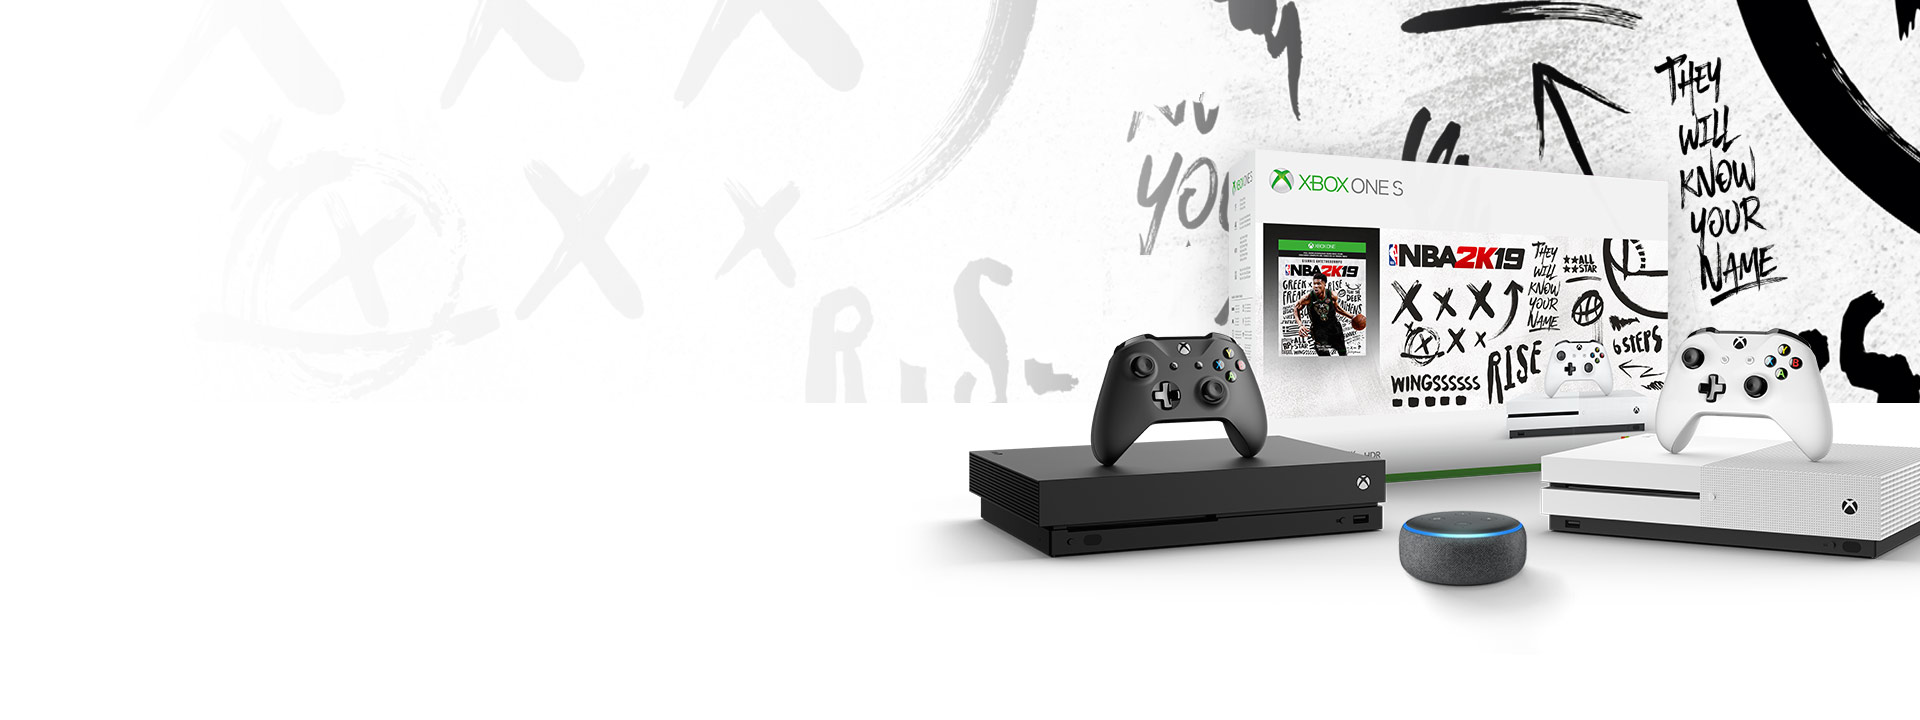 Xbox One X and Xbox One S with Amazon Echo Dot, in front of NBA 2K19 product box